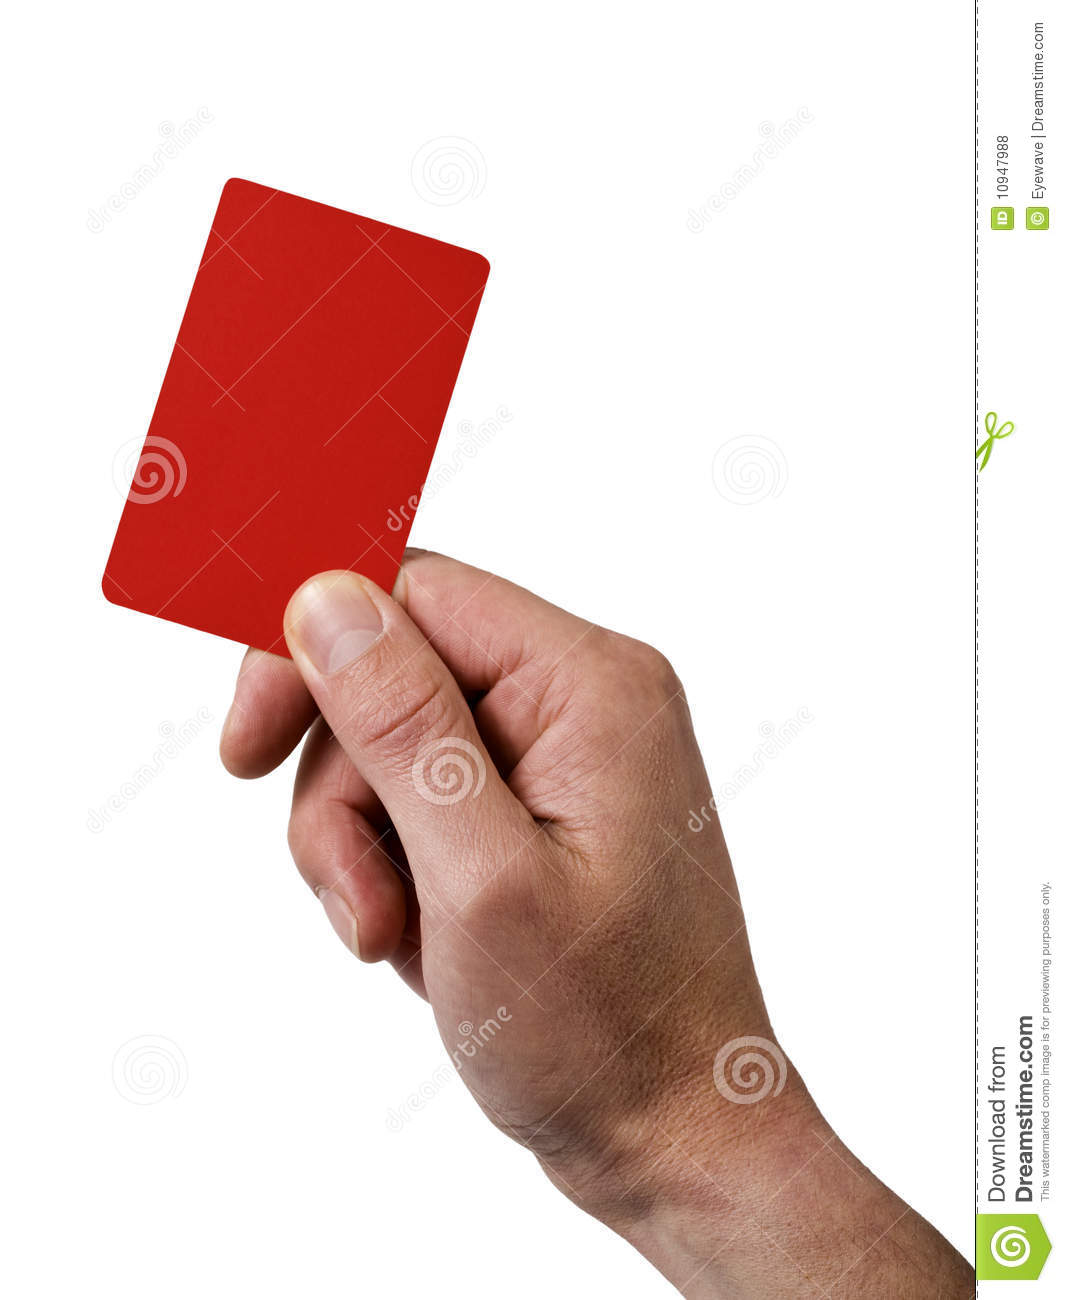 Card hand holding penalty red